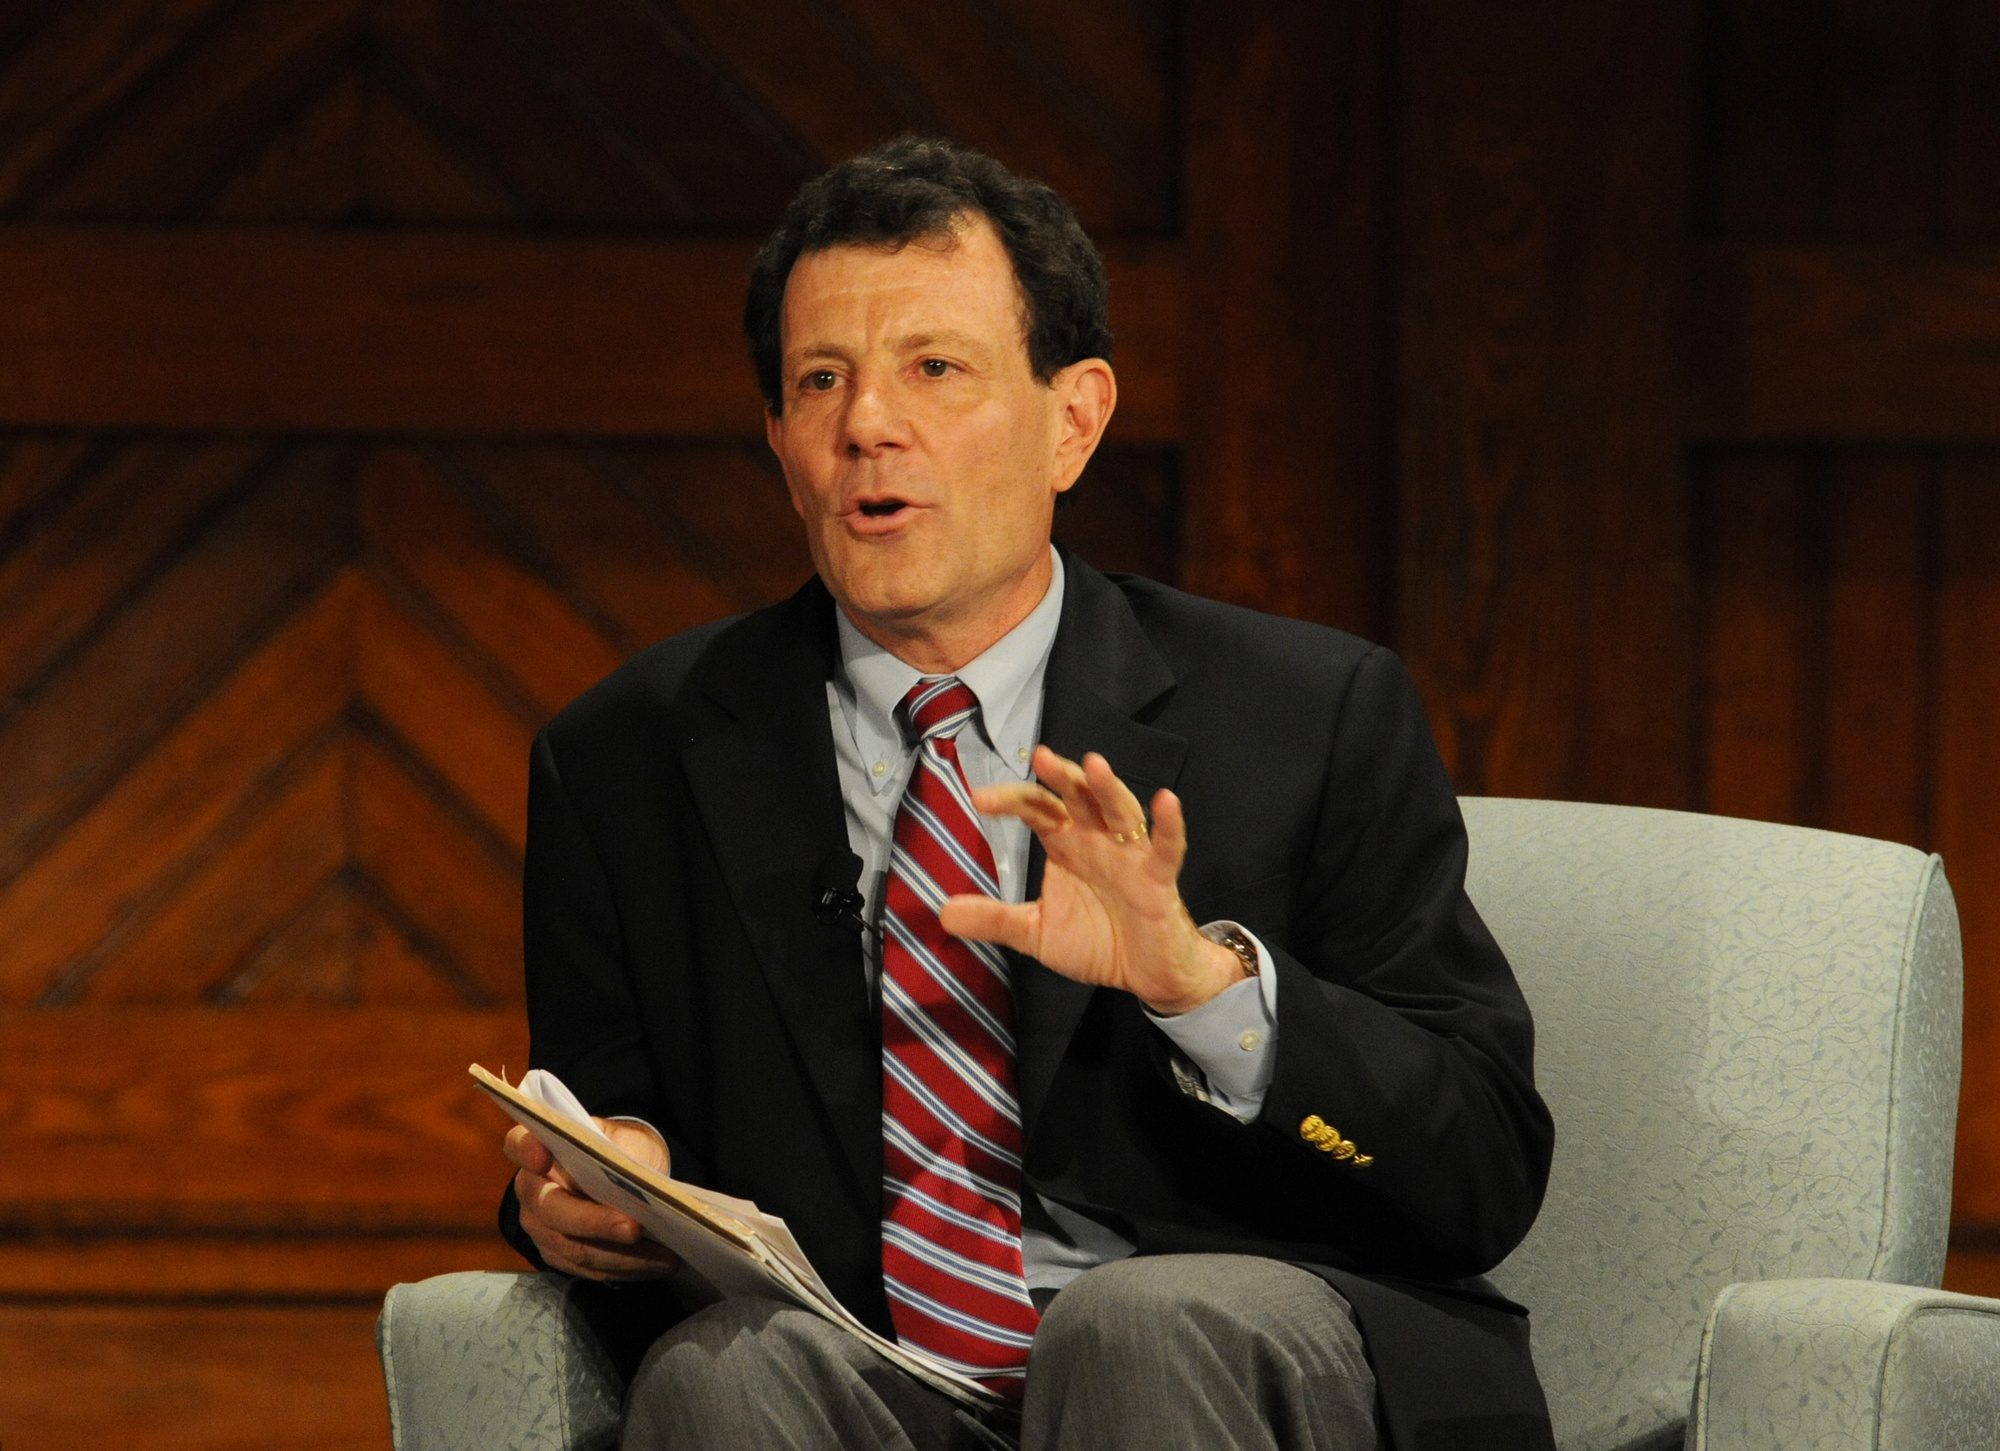 New York Times columnist and Harvard overseer Nicholas D. Kristof '81 questions University President Drew Gilpin Faust about divestment, the hierarchy of higher education, racial diversity, and a number of other pressing issues on Tuesday.